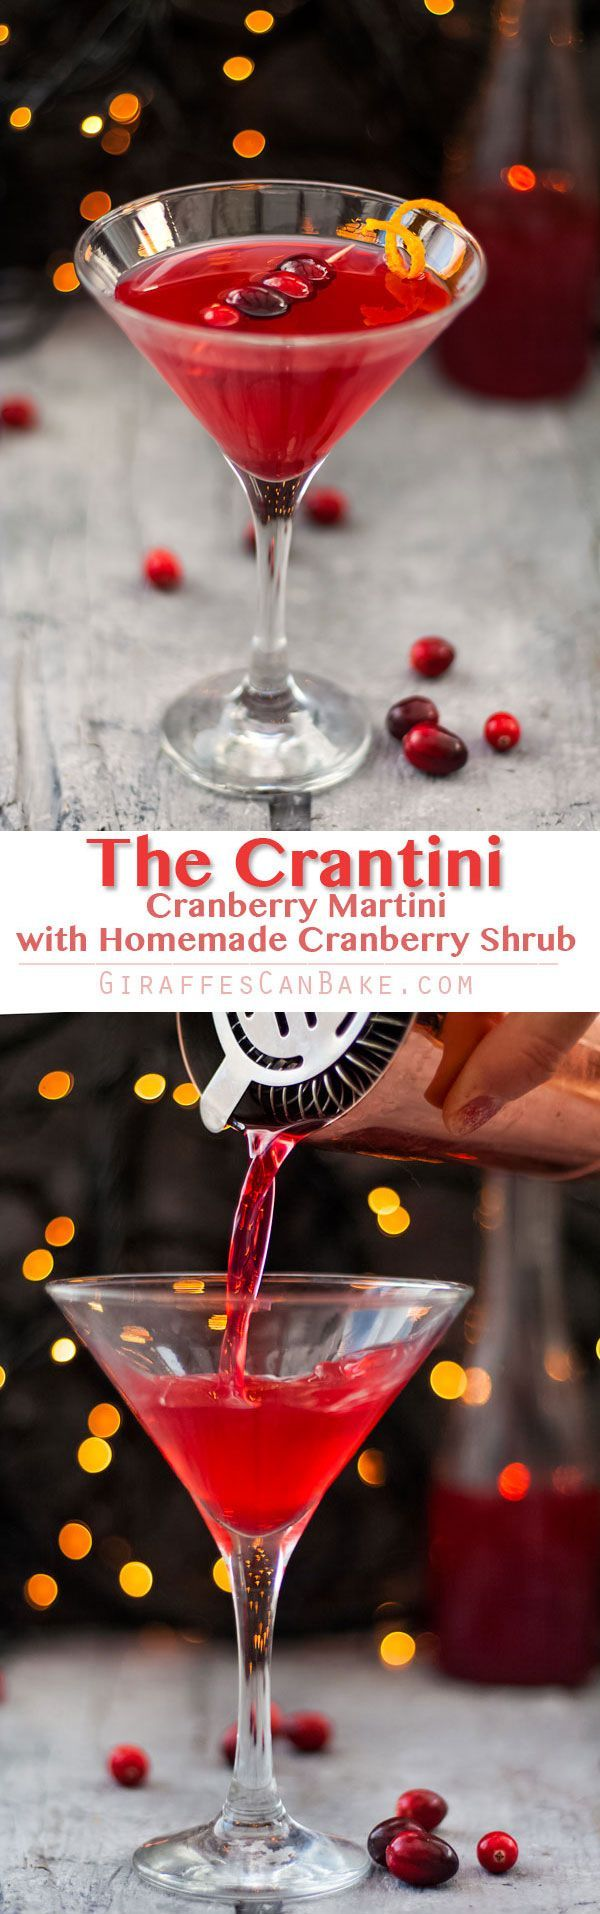 The Cranberry Martini is a sweet and slightly tart festive cocktail, made with a homemade cranberry shrub to give it a little bit of zing #cocktails #crantini #mixology #christmas via @giraffescanbake